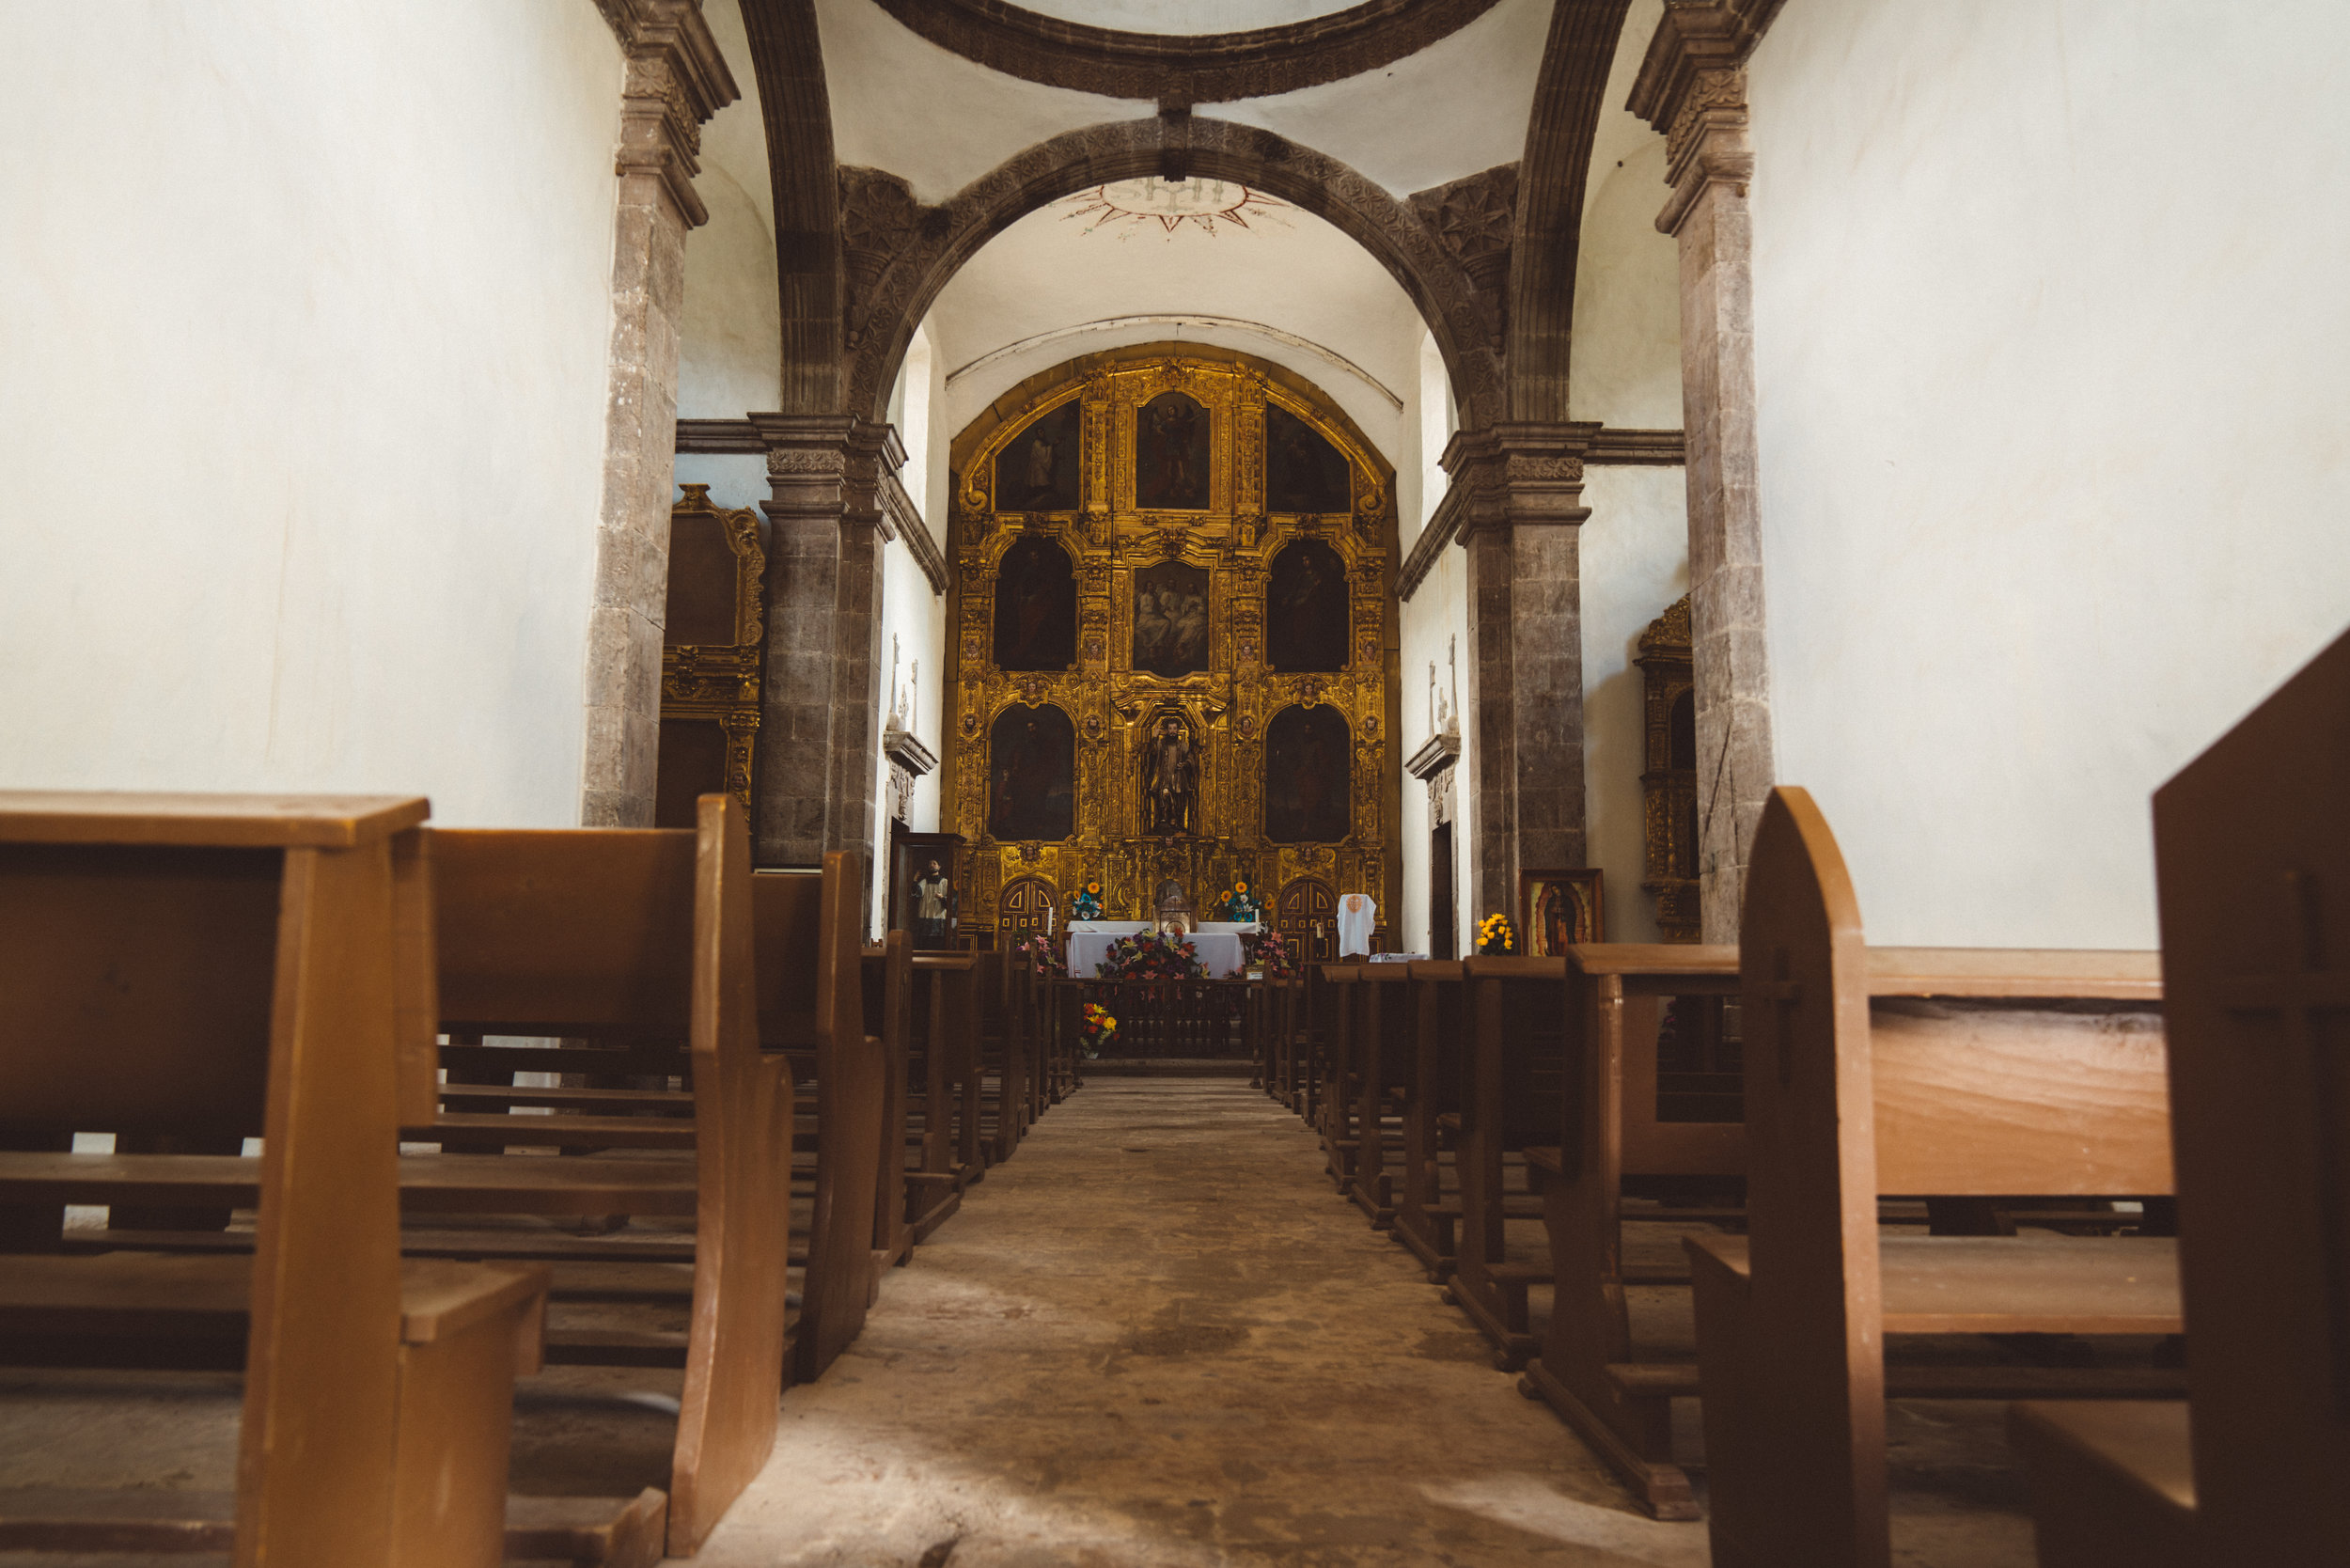 The Mission's interior.